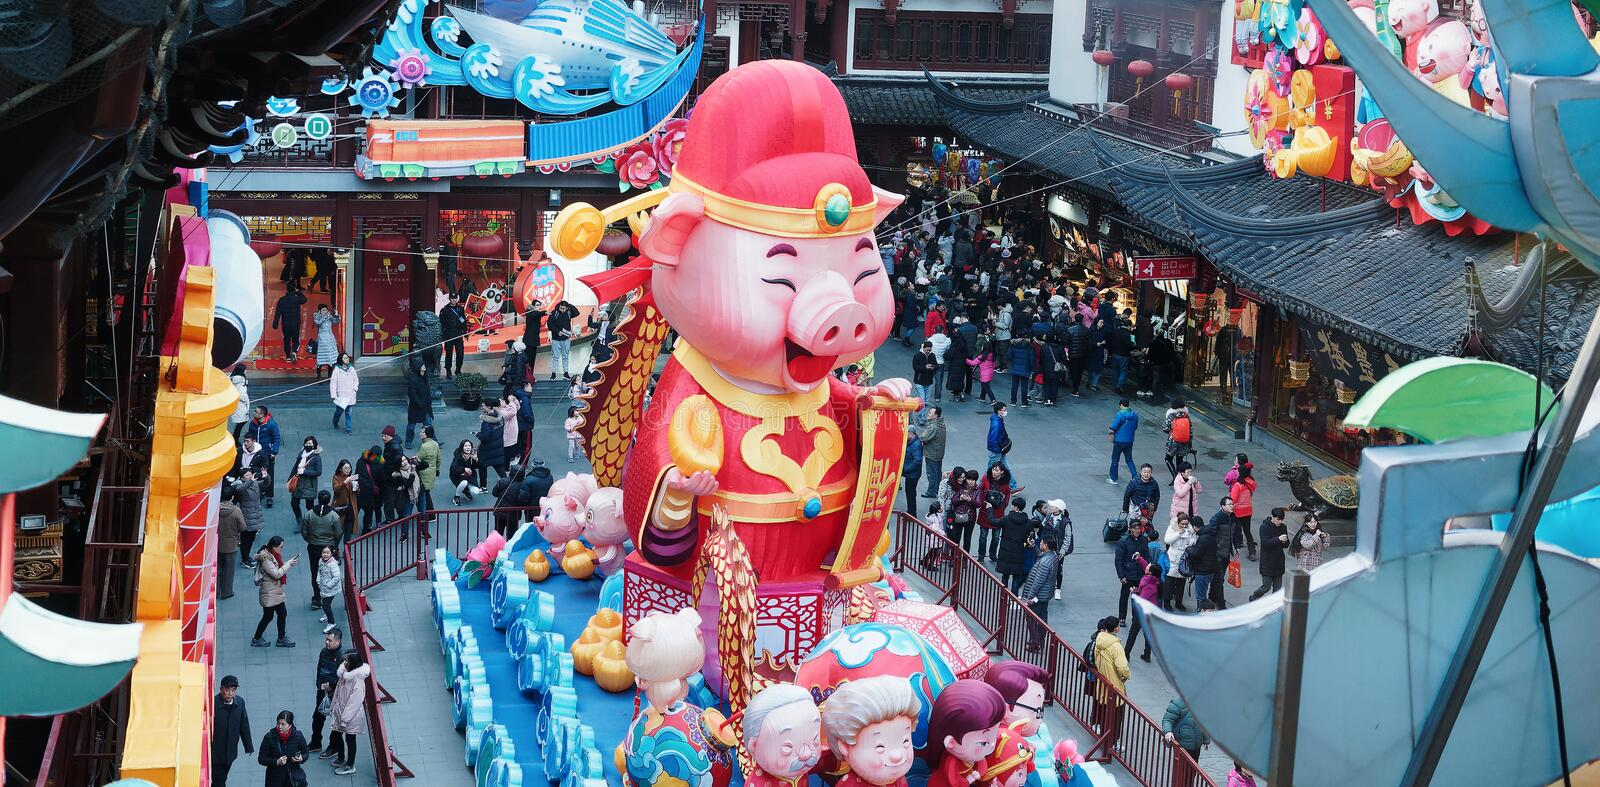 Shanghai, China - Jan. 26, 2019: Lantern Festival in the Chinese New Year Pig year, morning view of colorful lanterns stock images